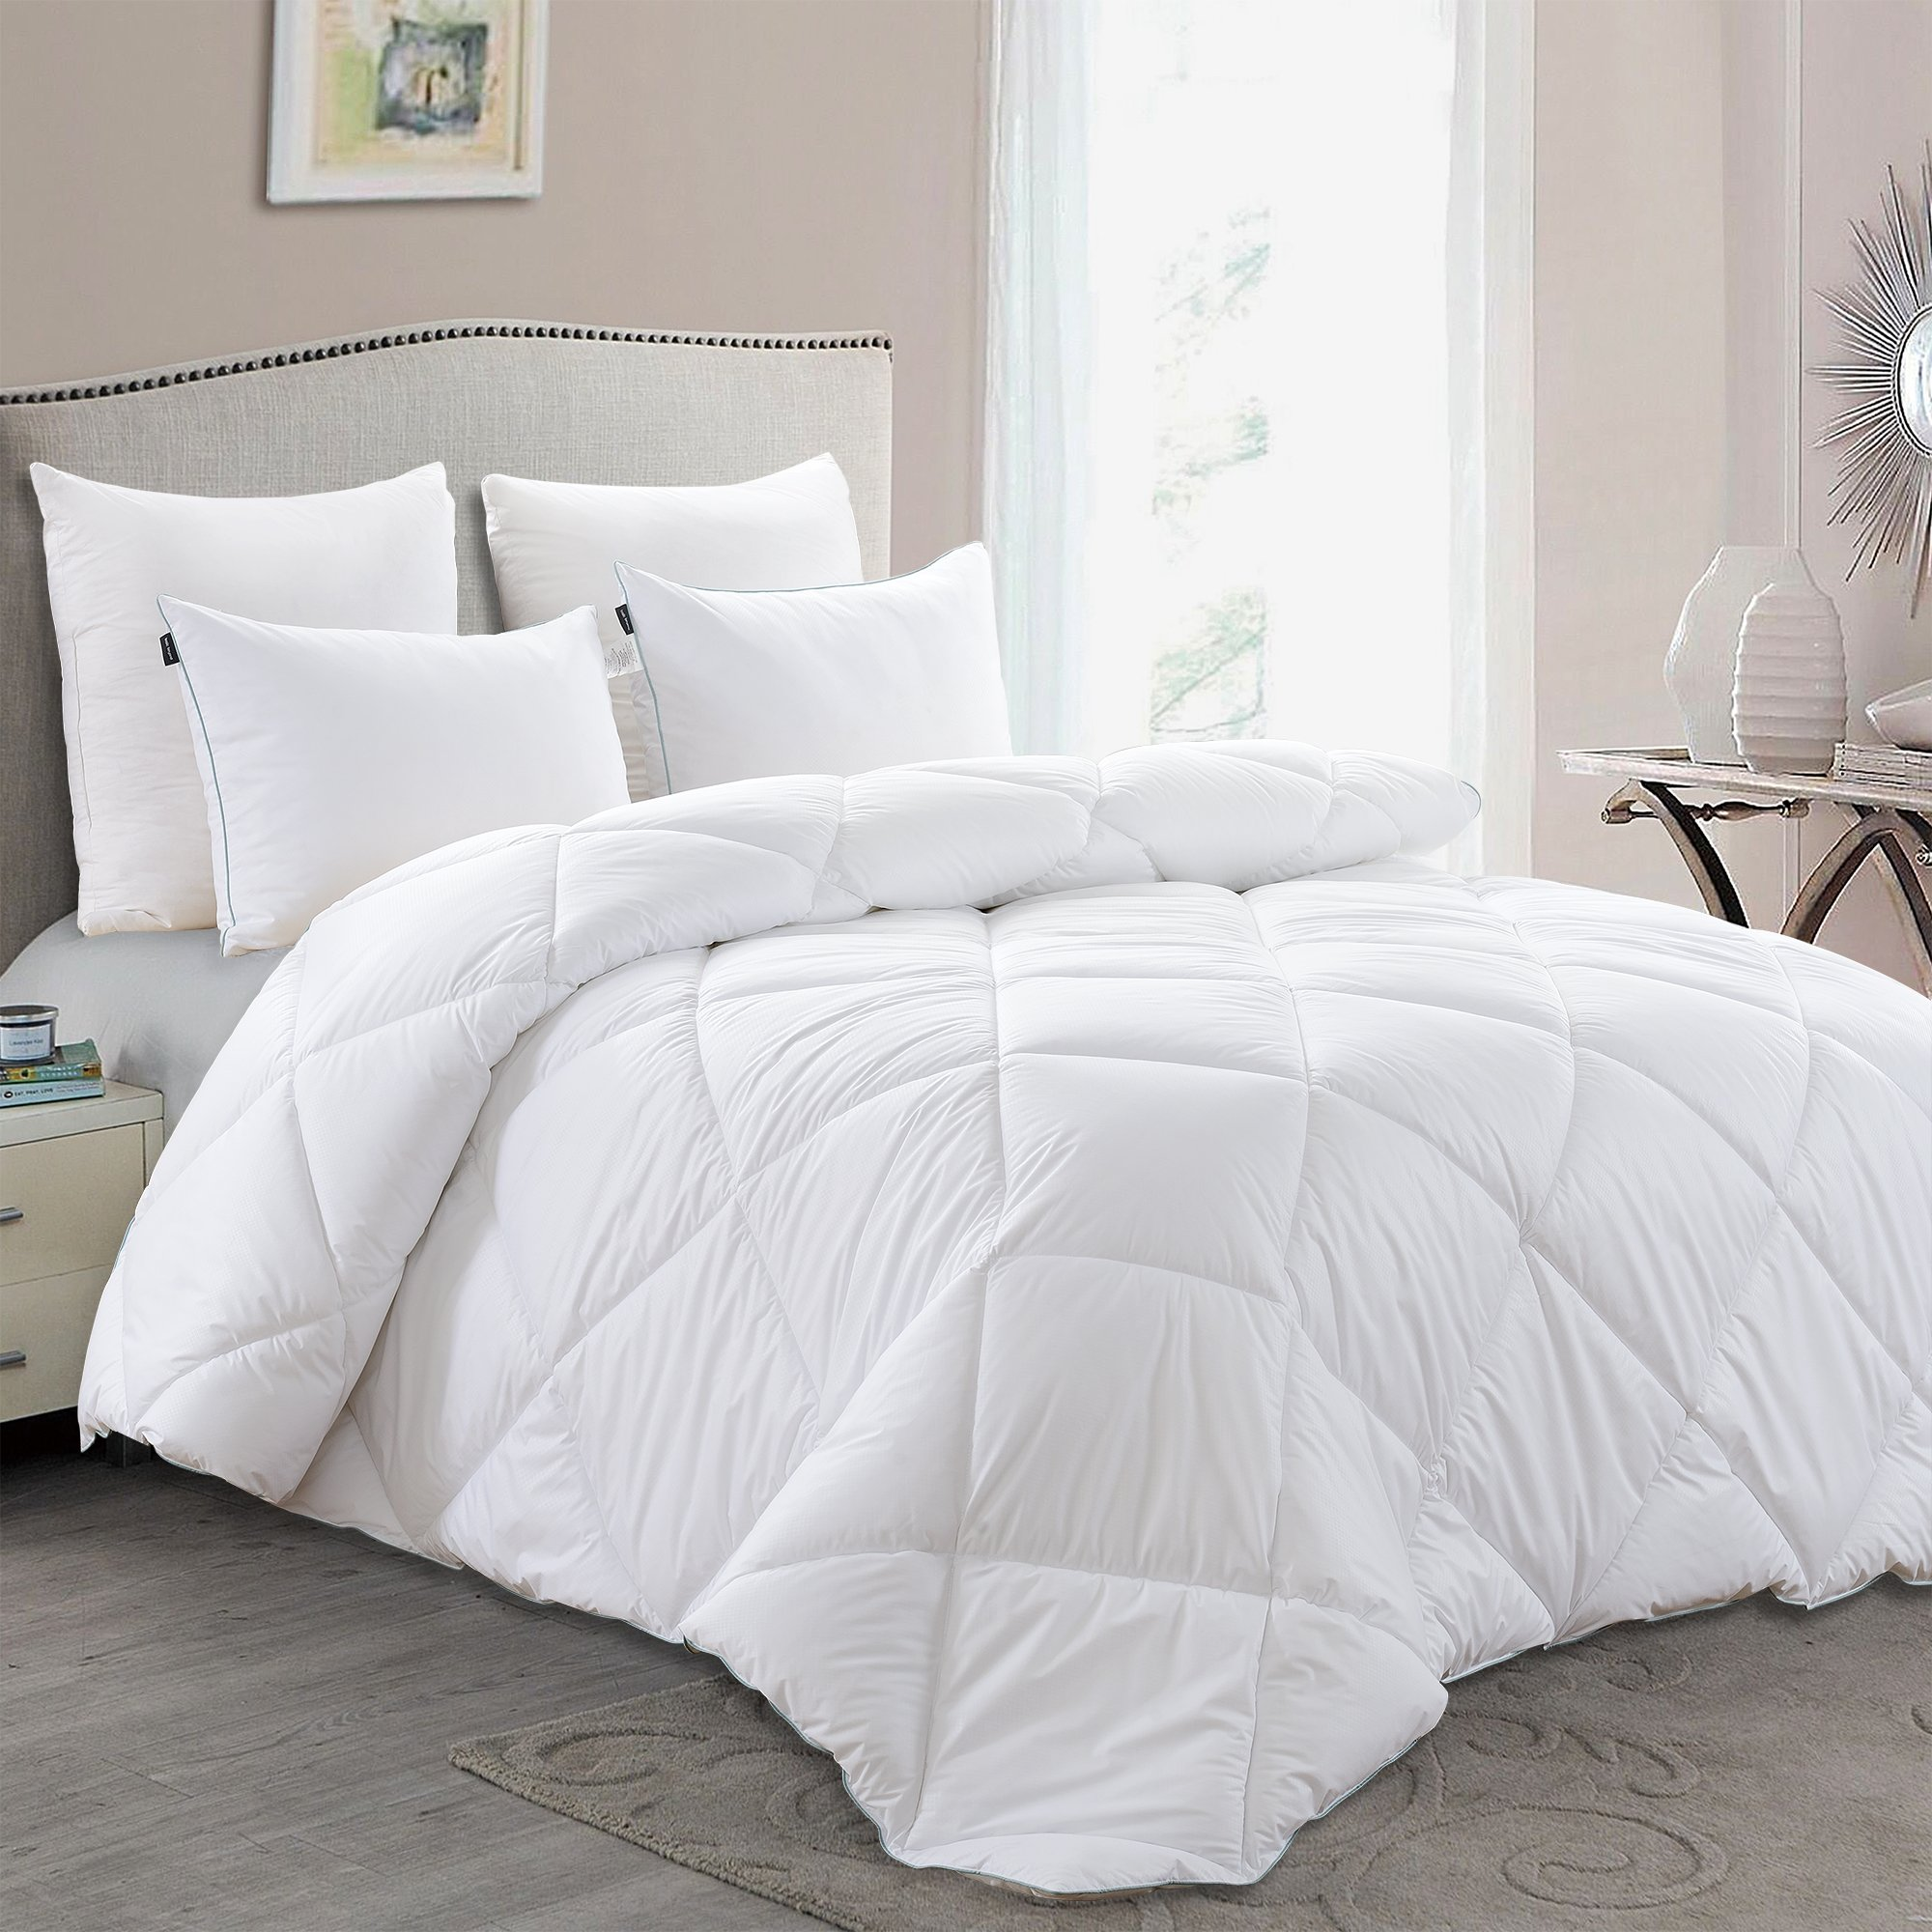 King Size Duck Down Comforter - Basic Beyond Luxury White Lightweight Duvet Insert with Soft Peach Skin Fabric Shell for Sleeping